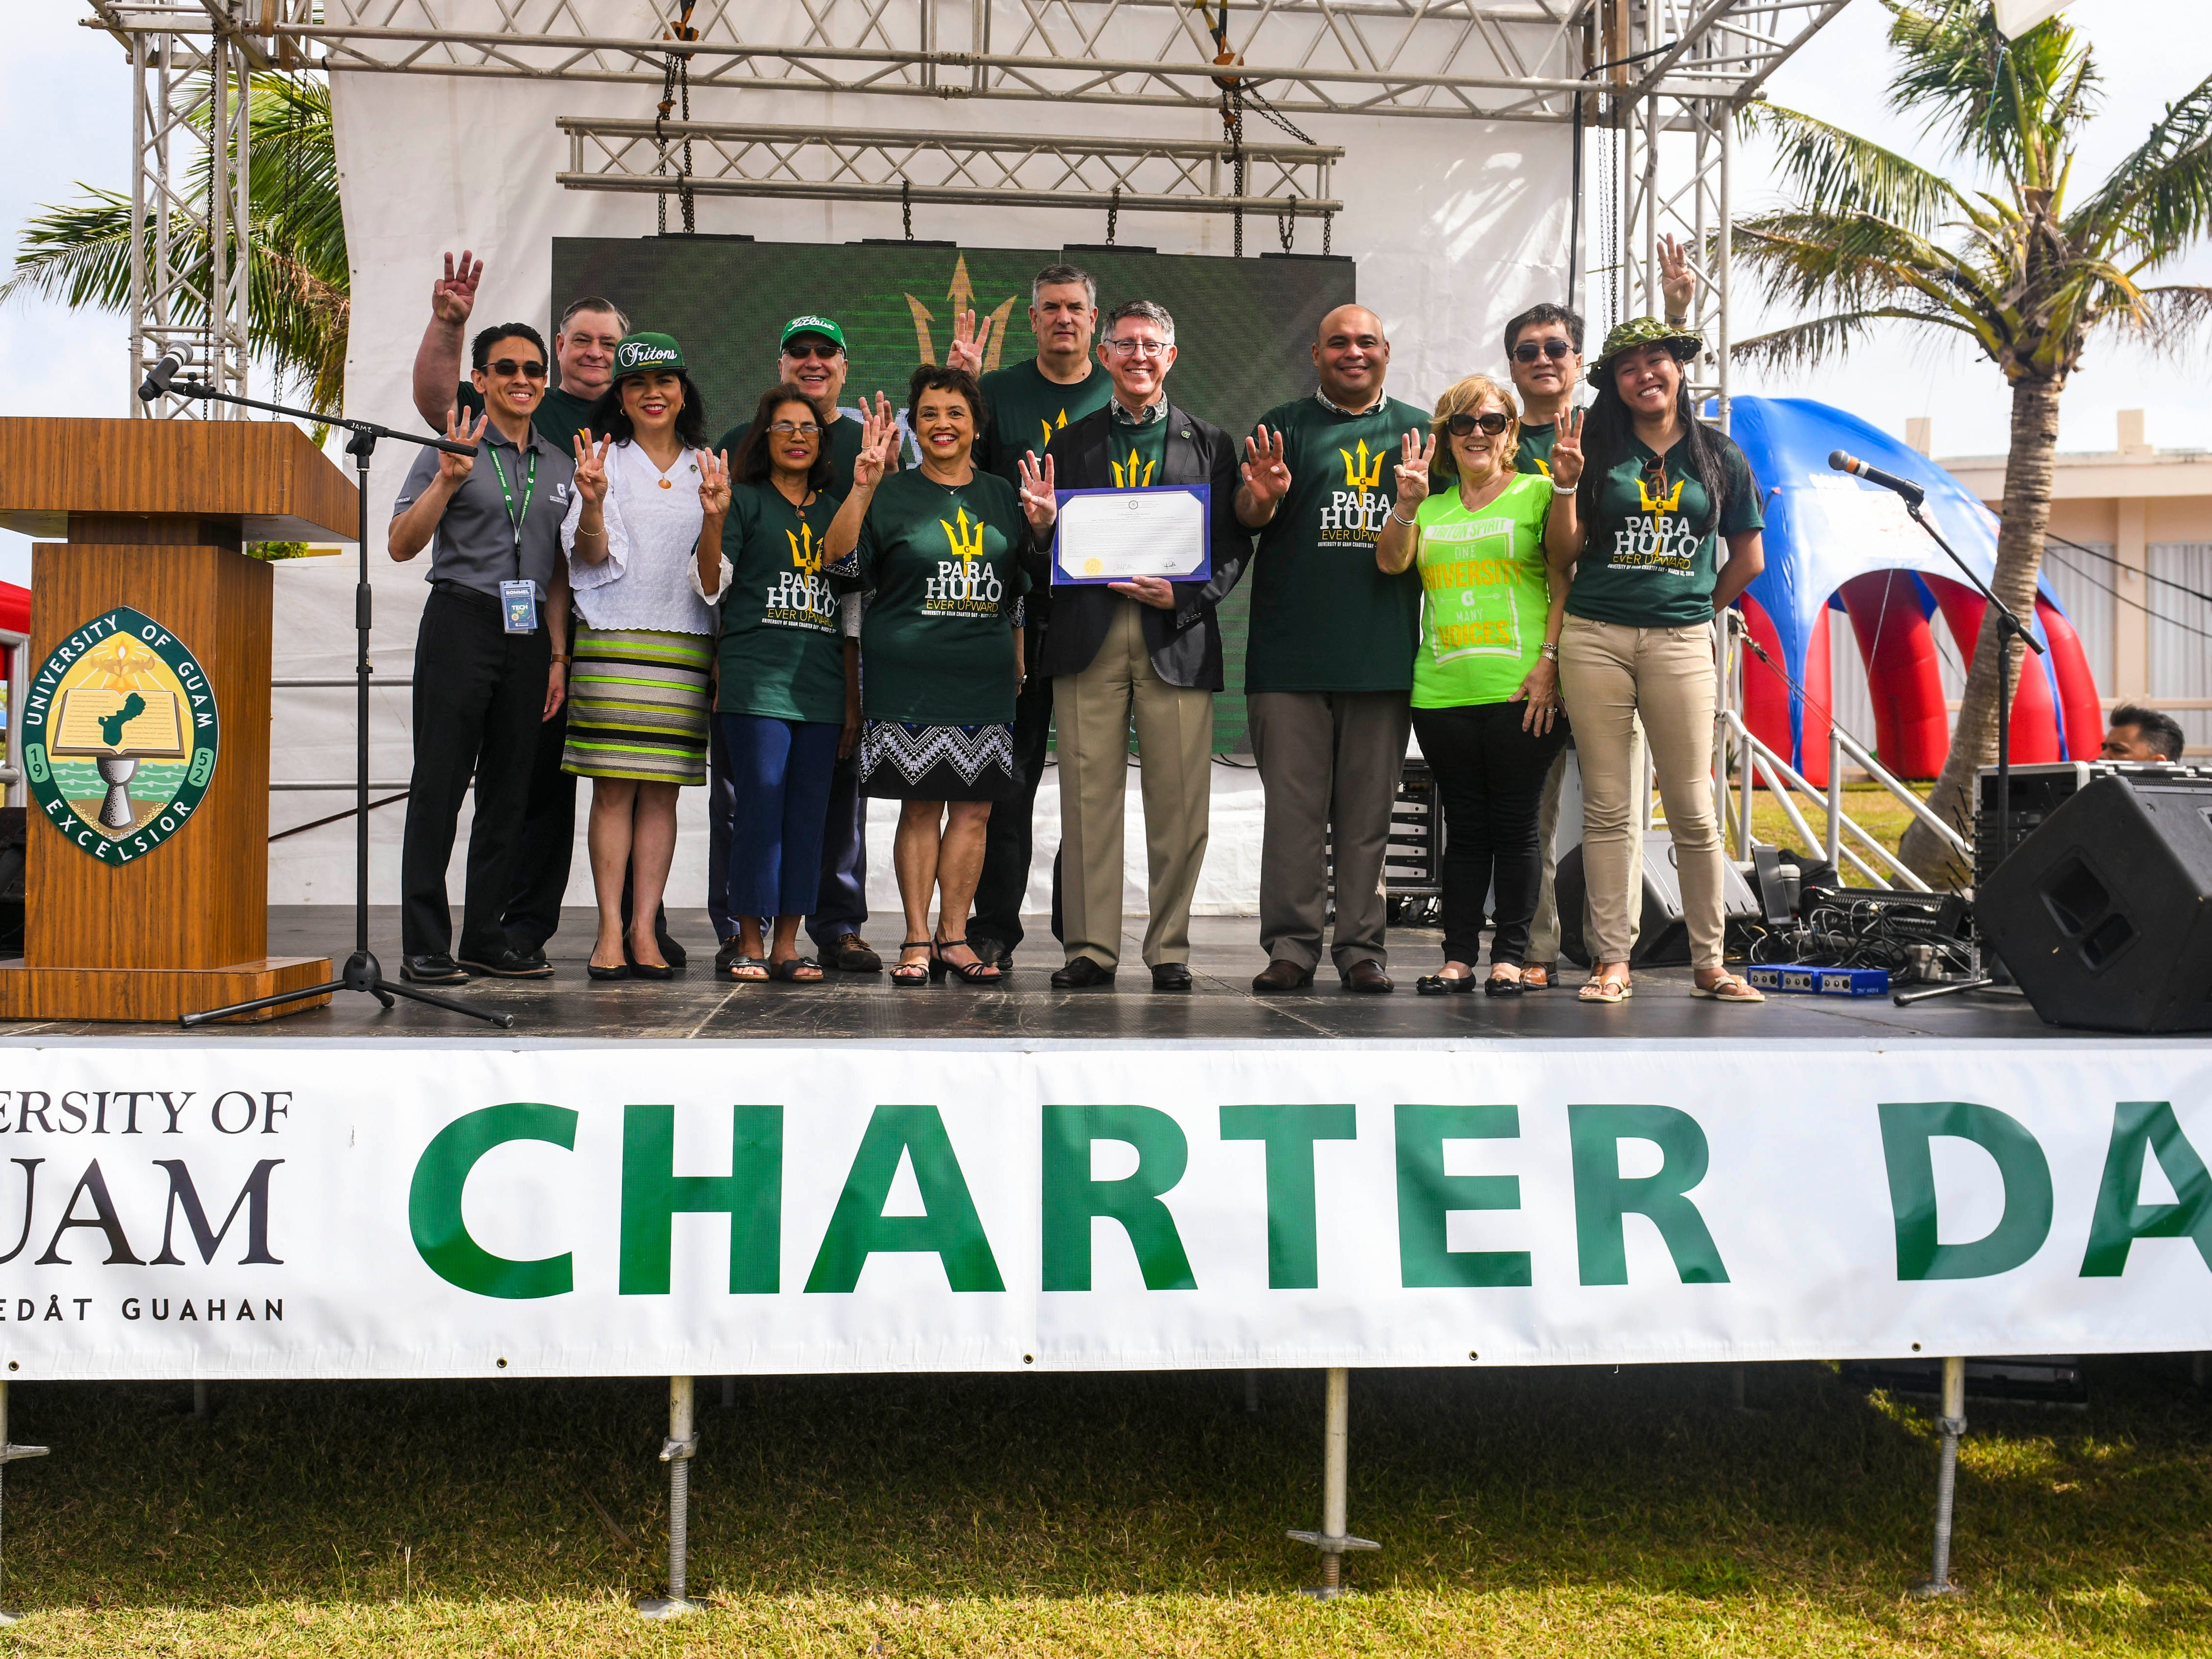 Gov. Lou Leon Guerrero, Lt. Gov. Josh Tenorio, and University of Guam faculty members hold up three fingers, symbolic of the college's triton emblem, after a proclamation signing was held in celebration of UOG's 51st Charter Day in Mangilao on Tuesday, March 12, 2019.